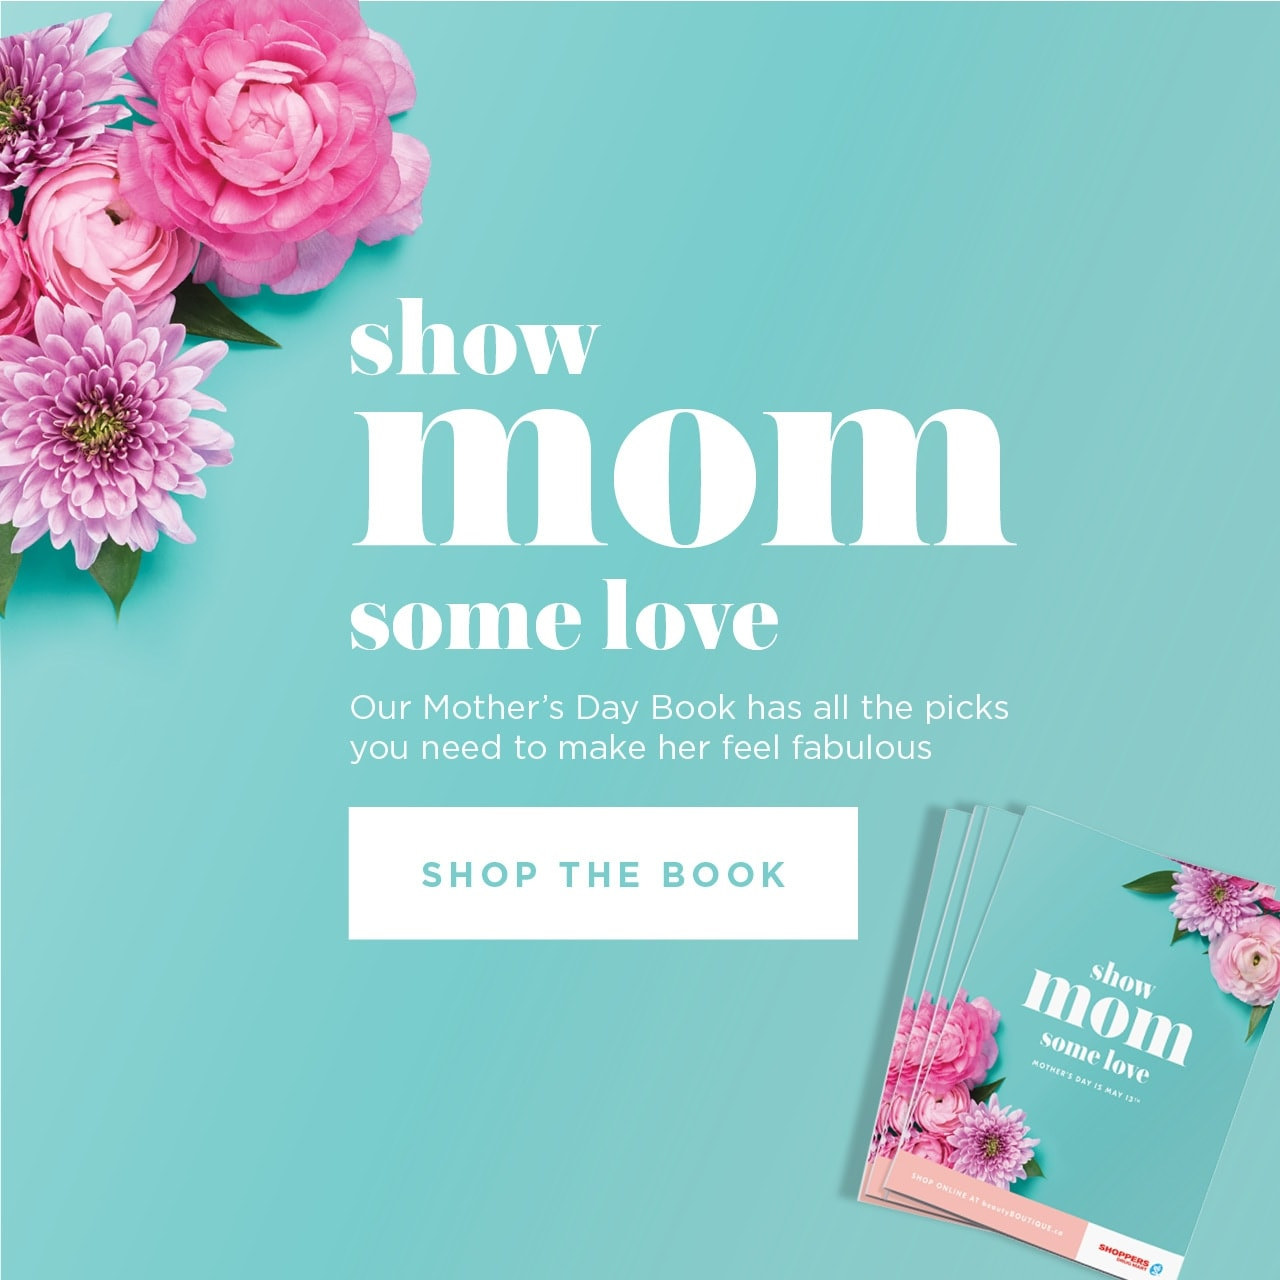 Show mom some love. Our mother's day book has all the picks you need to make her feel fabulous